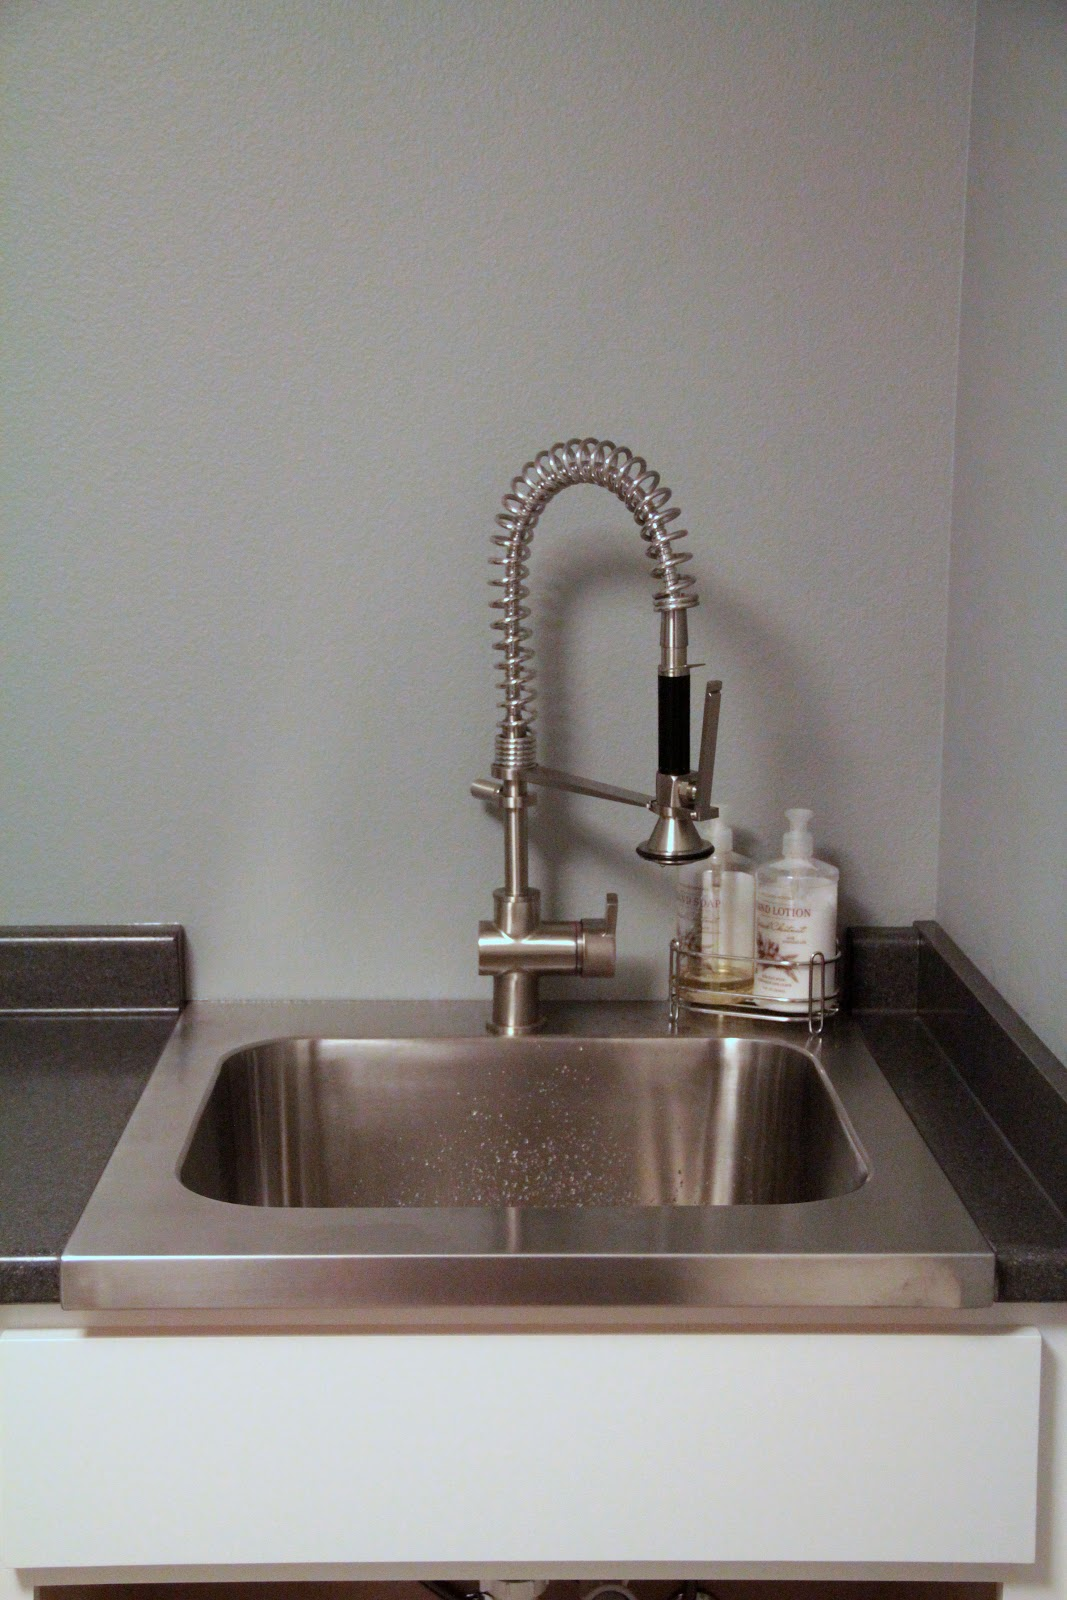 Laundry room sink. Both the sink and faucet are from Ikea.